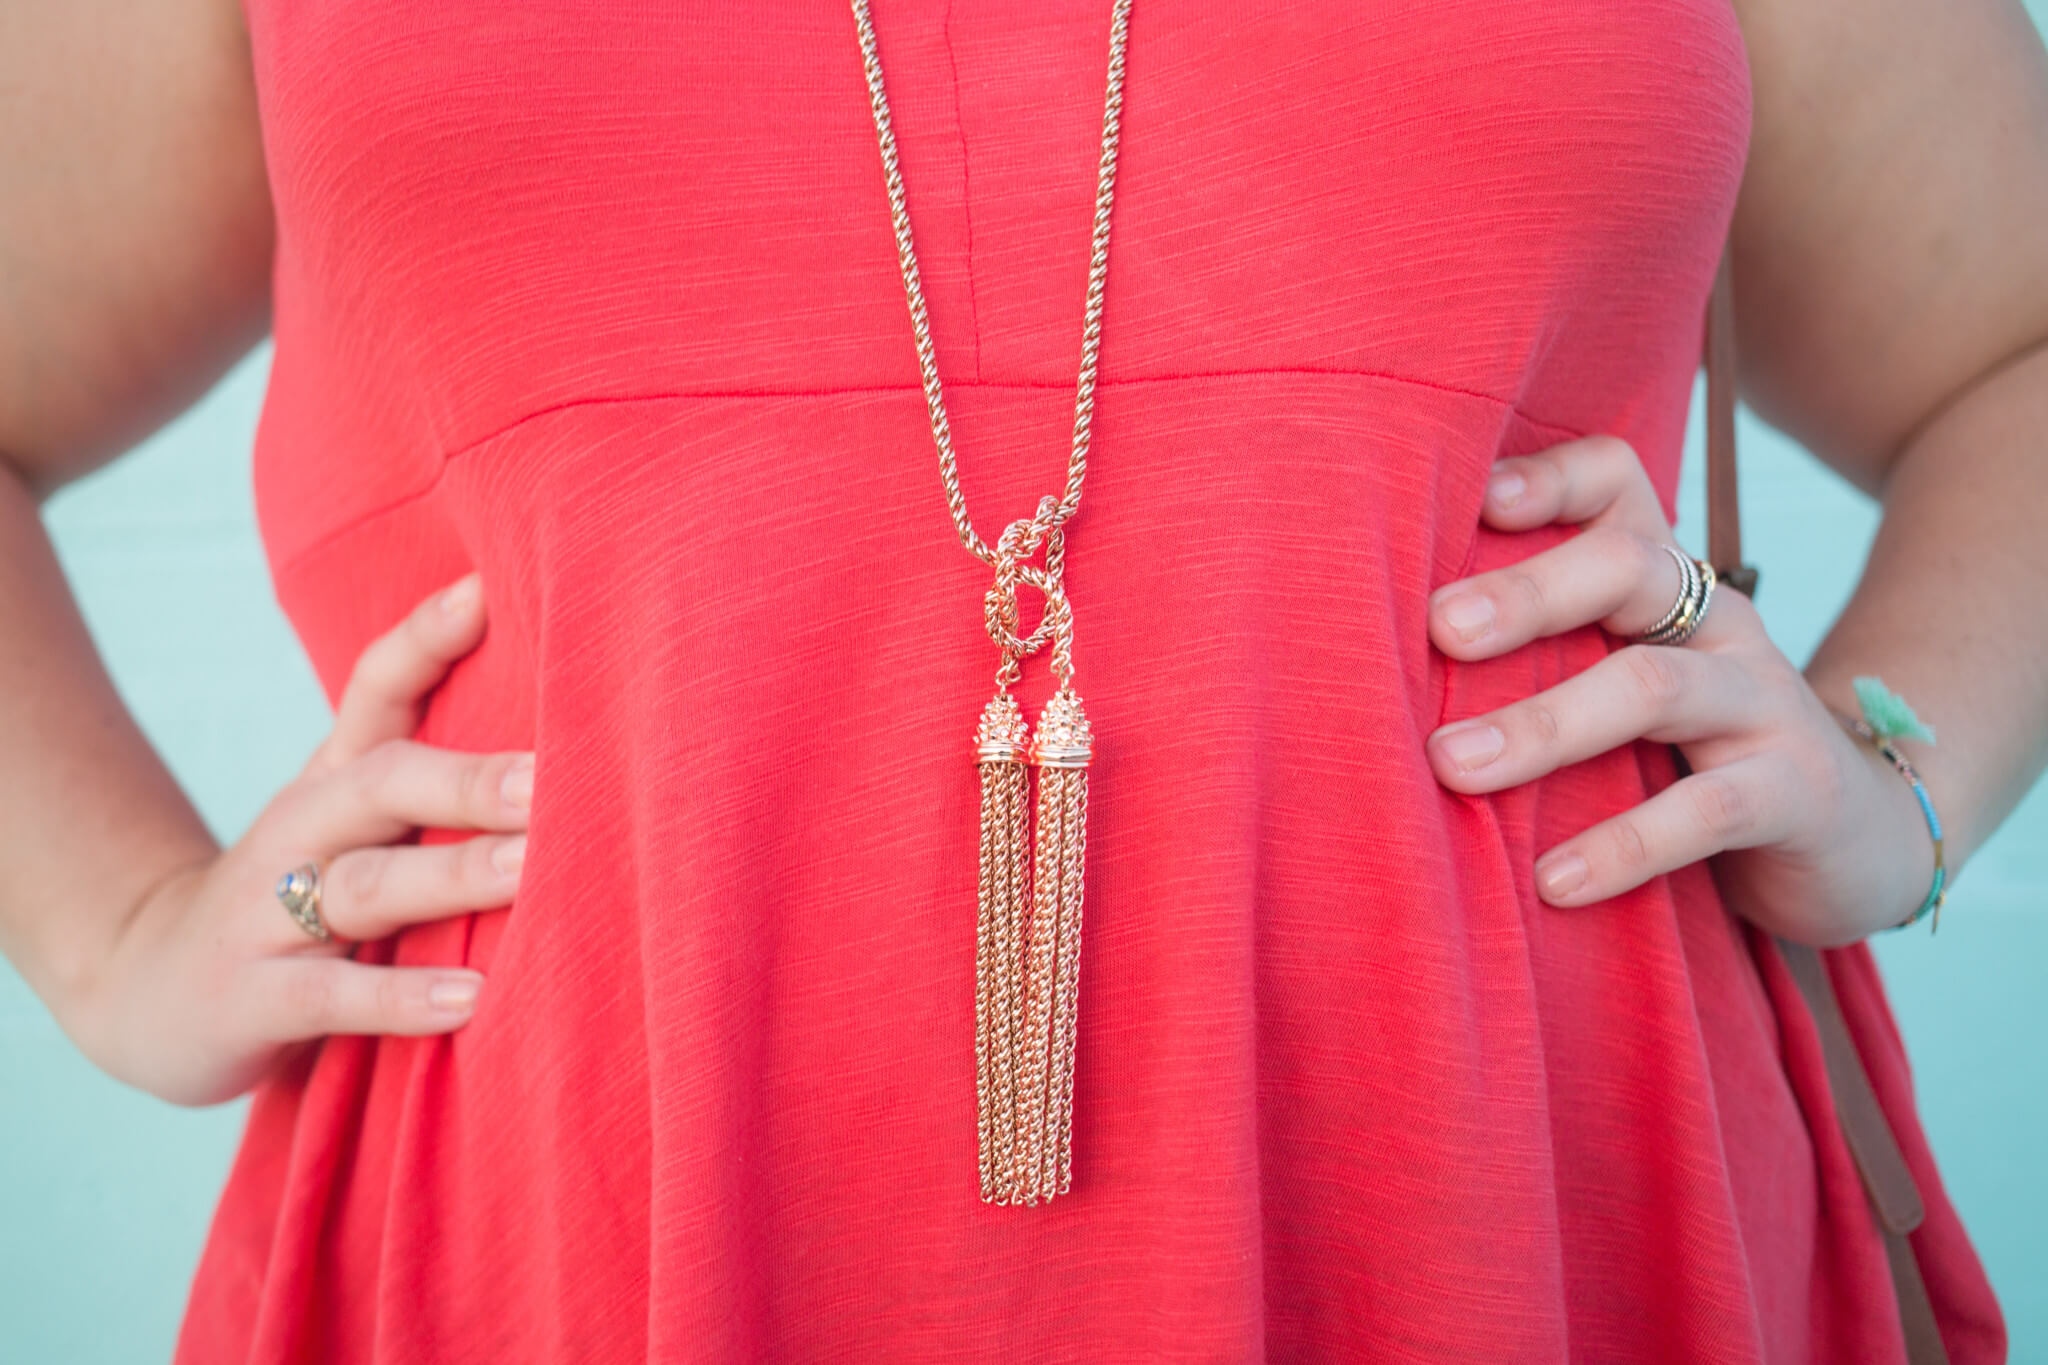 This Kendra Scott tassel necklace is the perfect addition to any outfit | Something Gold, Something Blue a curvy fashion blog by Emily Bastedo